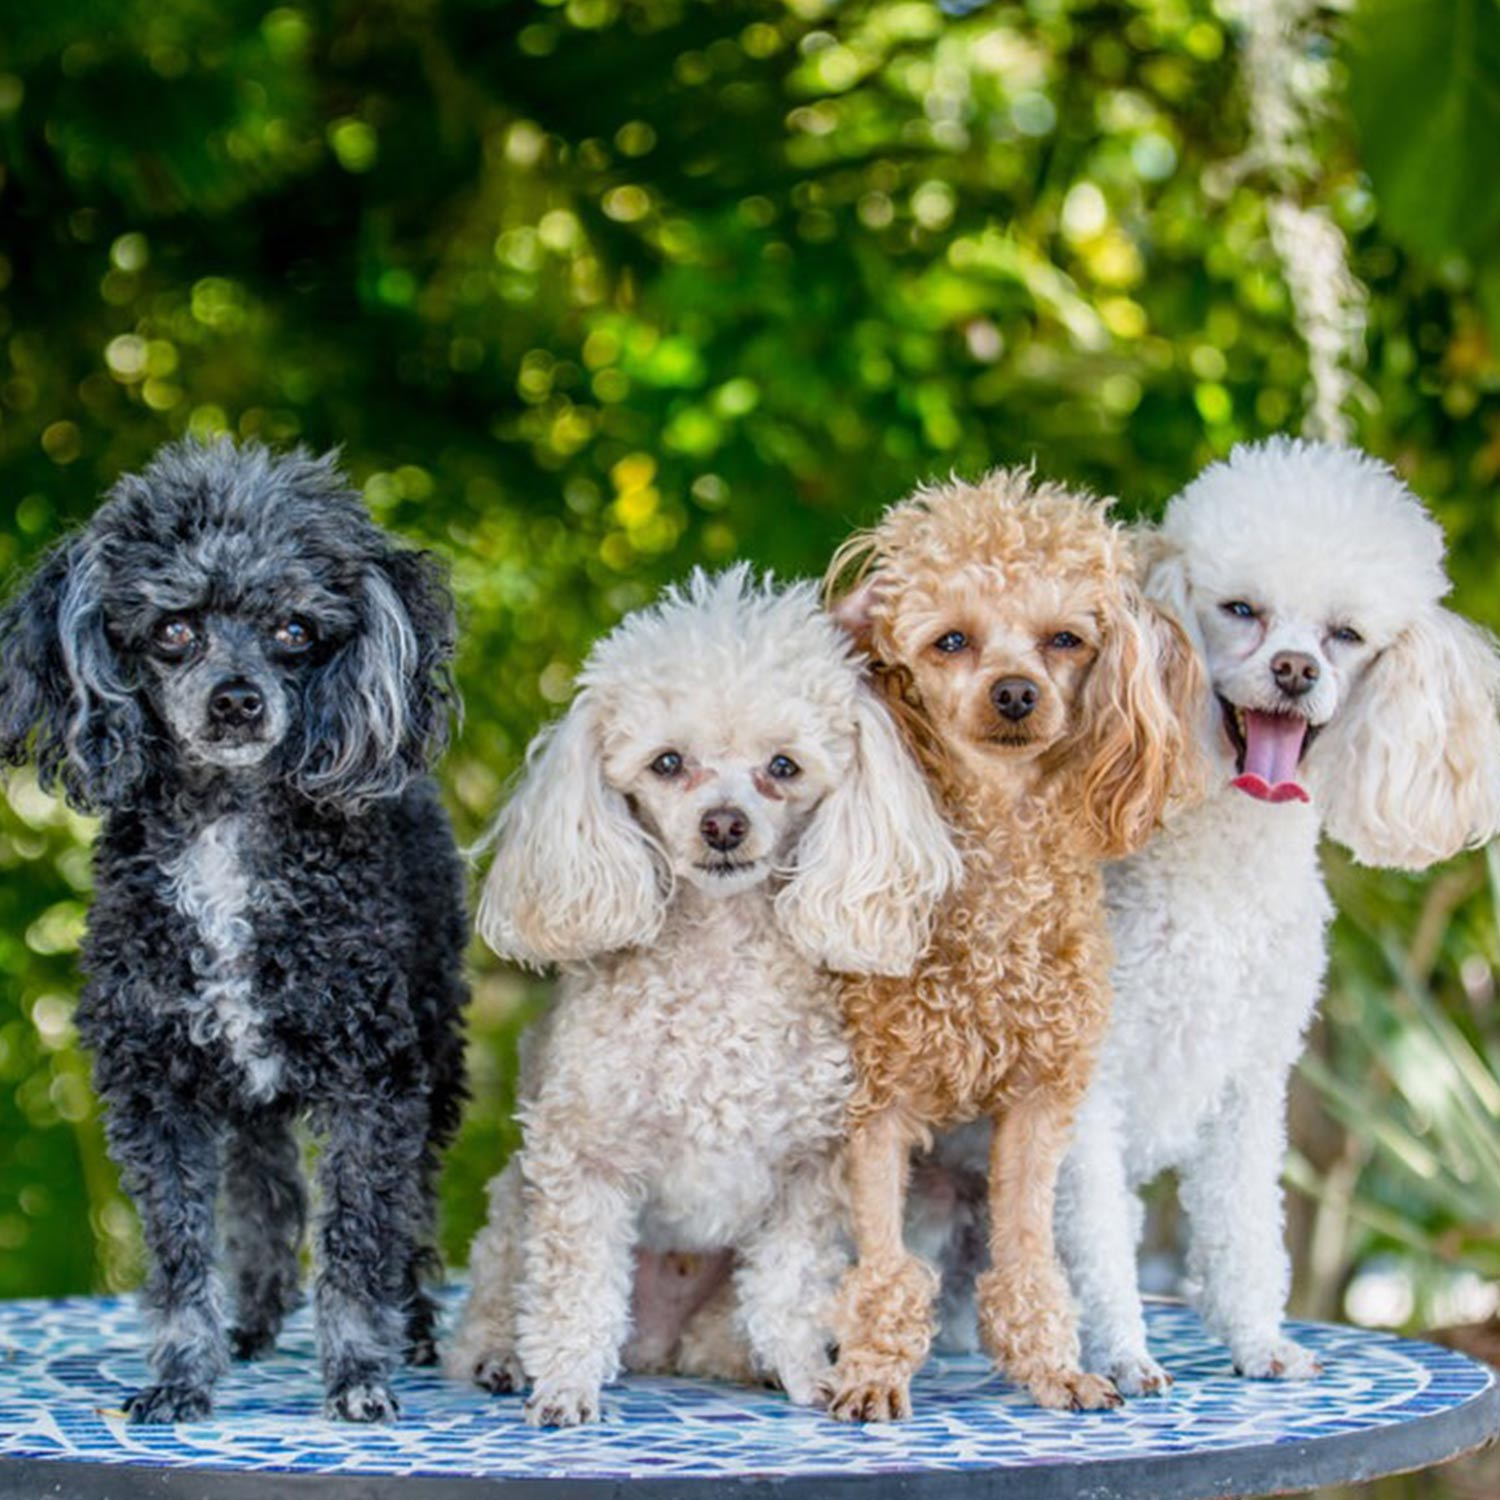 Sheila and Eric N. emailed a picture of theirfamily of four teacup poodles, from left to right: Shaker, Martini, Margarita, and Salt! More thanone is always fun! They live in Venice, FL.